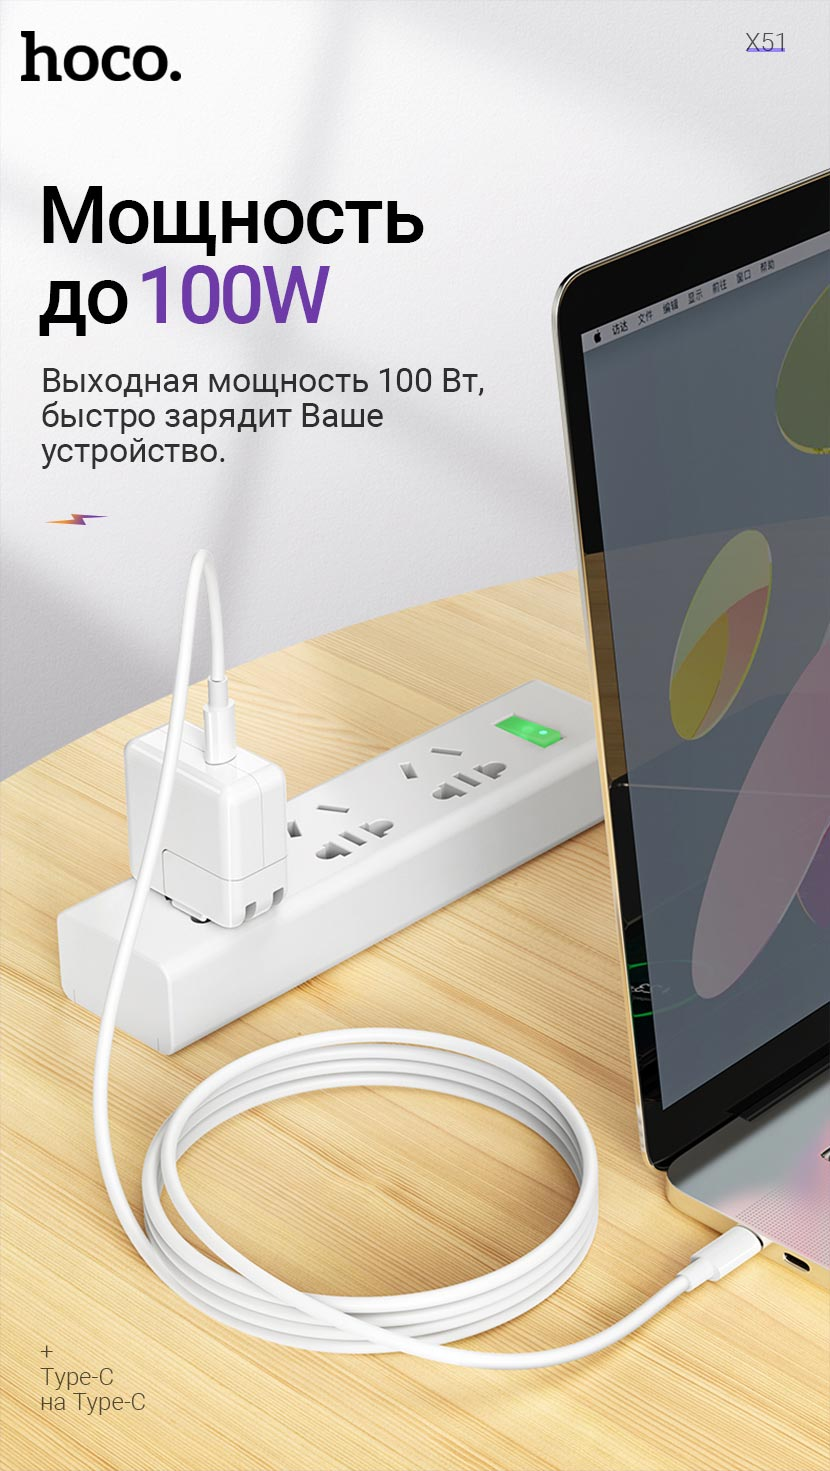 hoco news x51 high power 100w charging data cable output ru